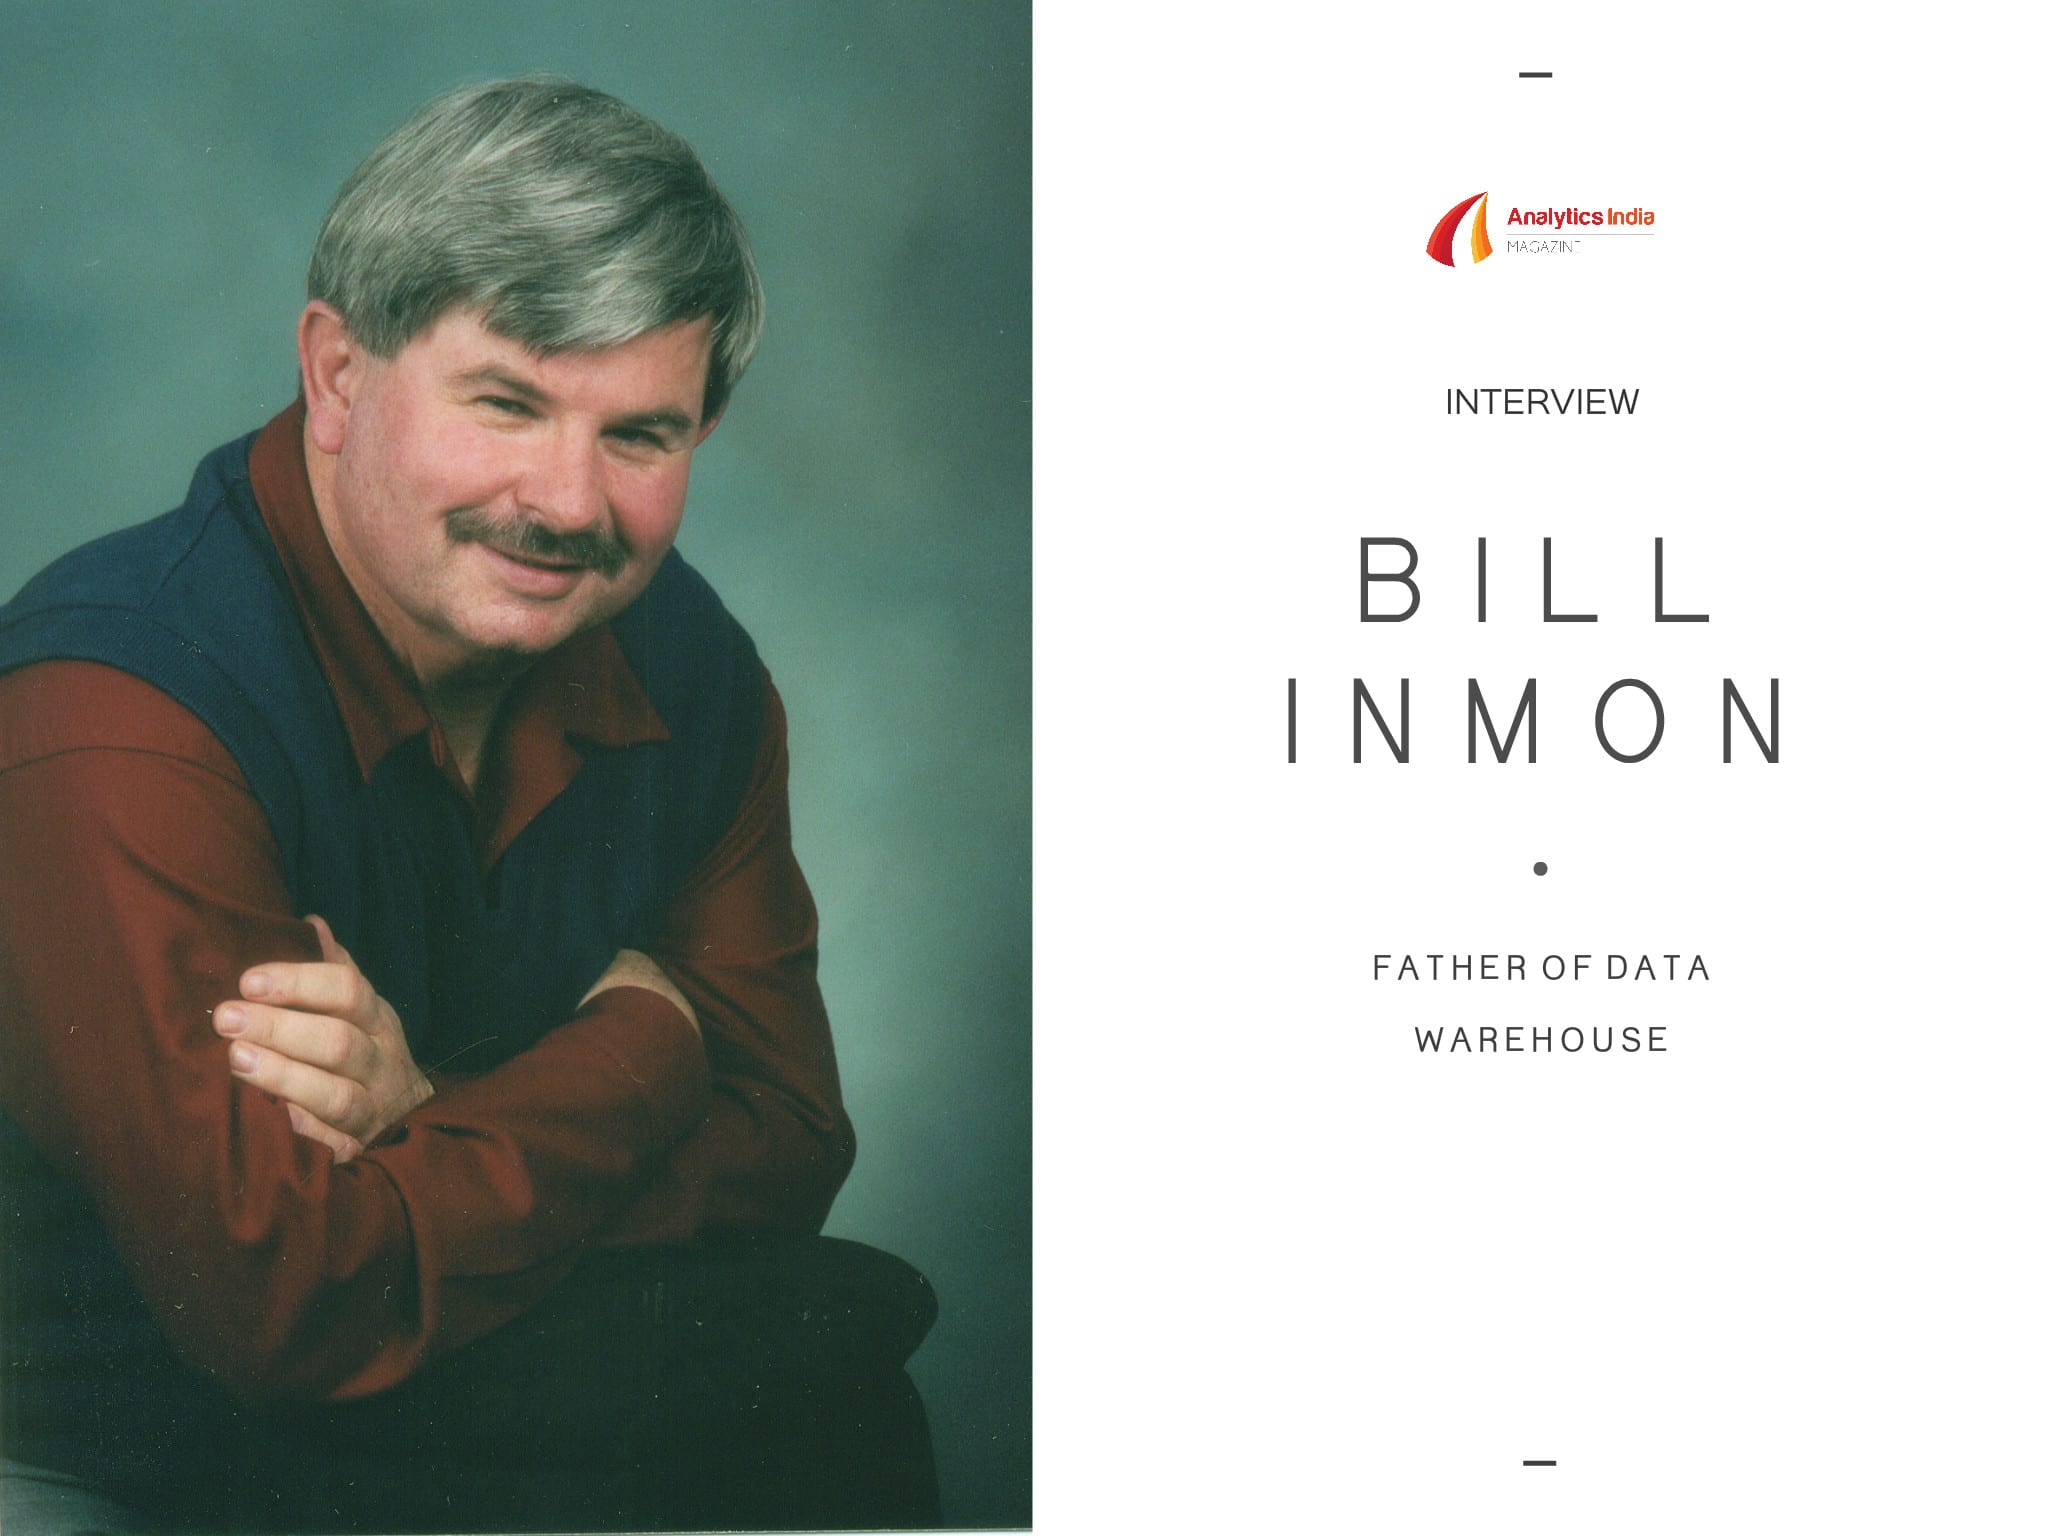 BILL INMON